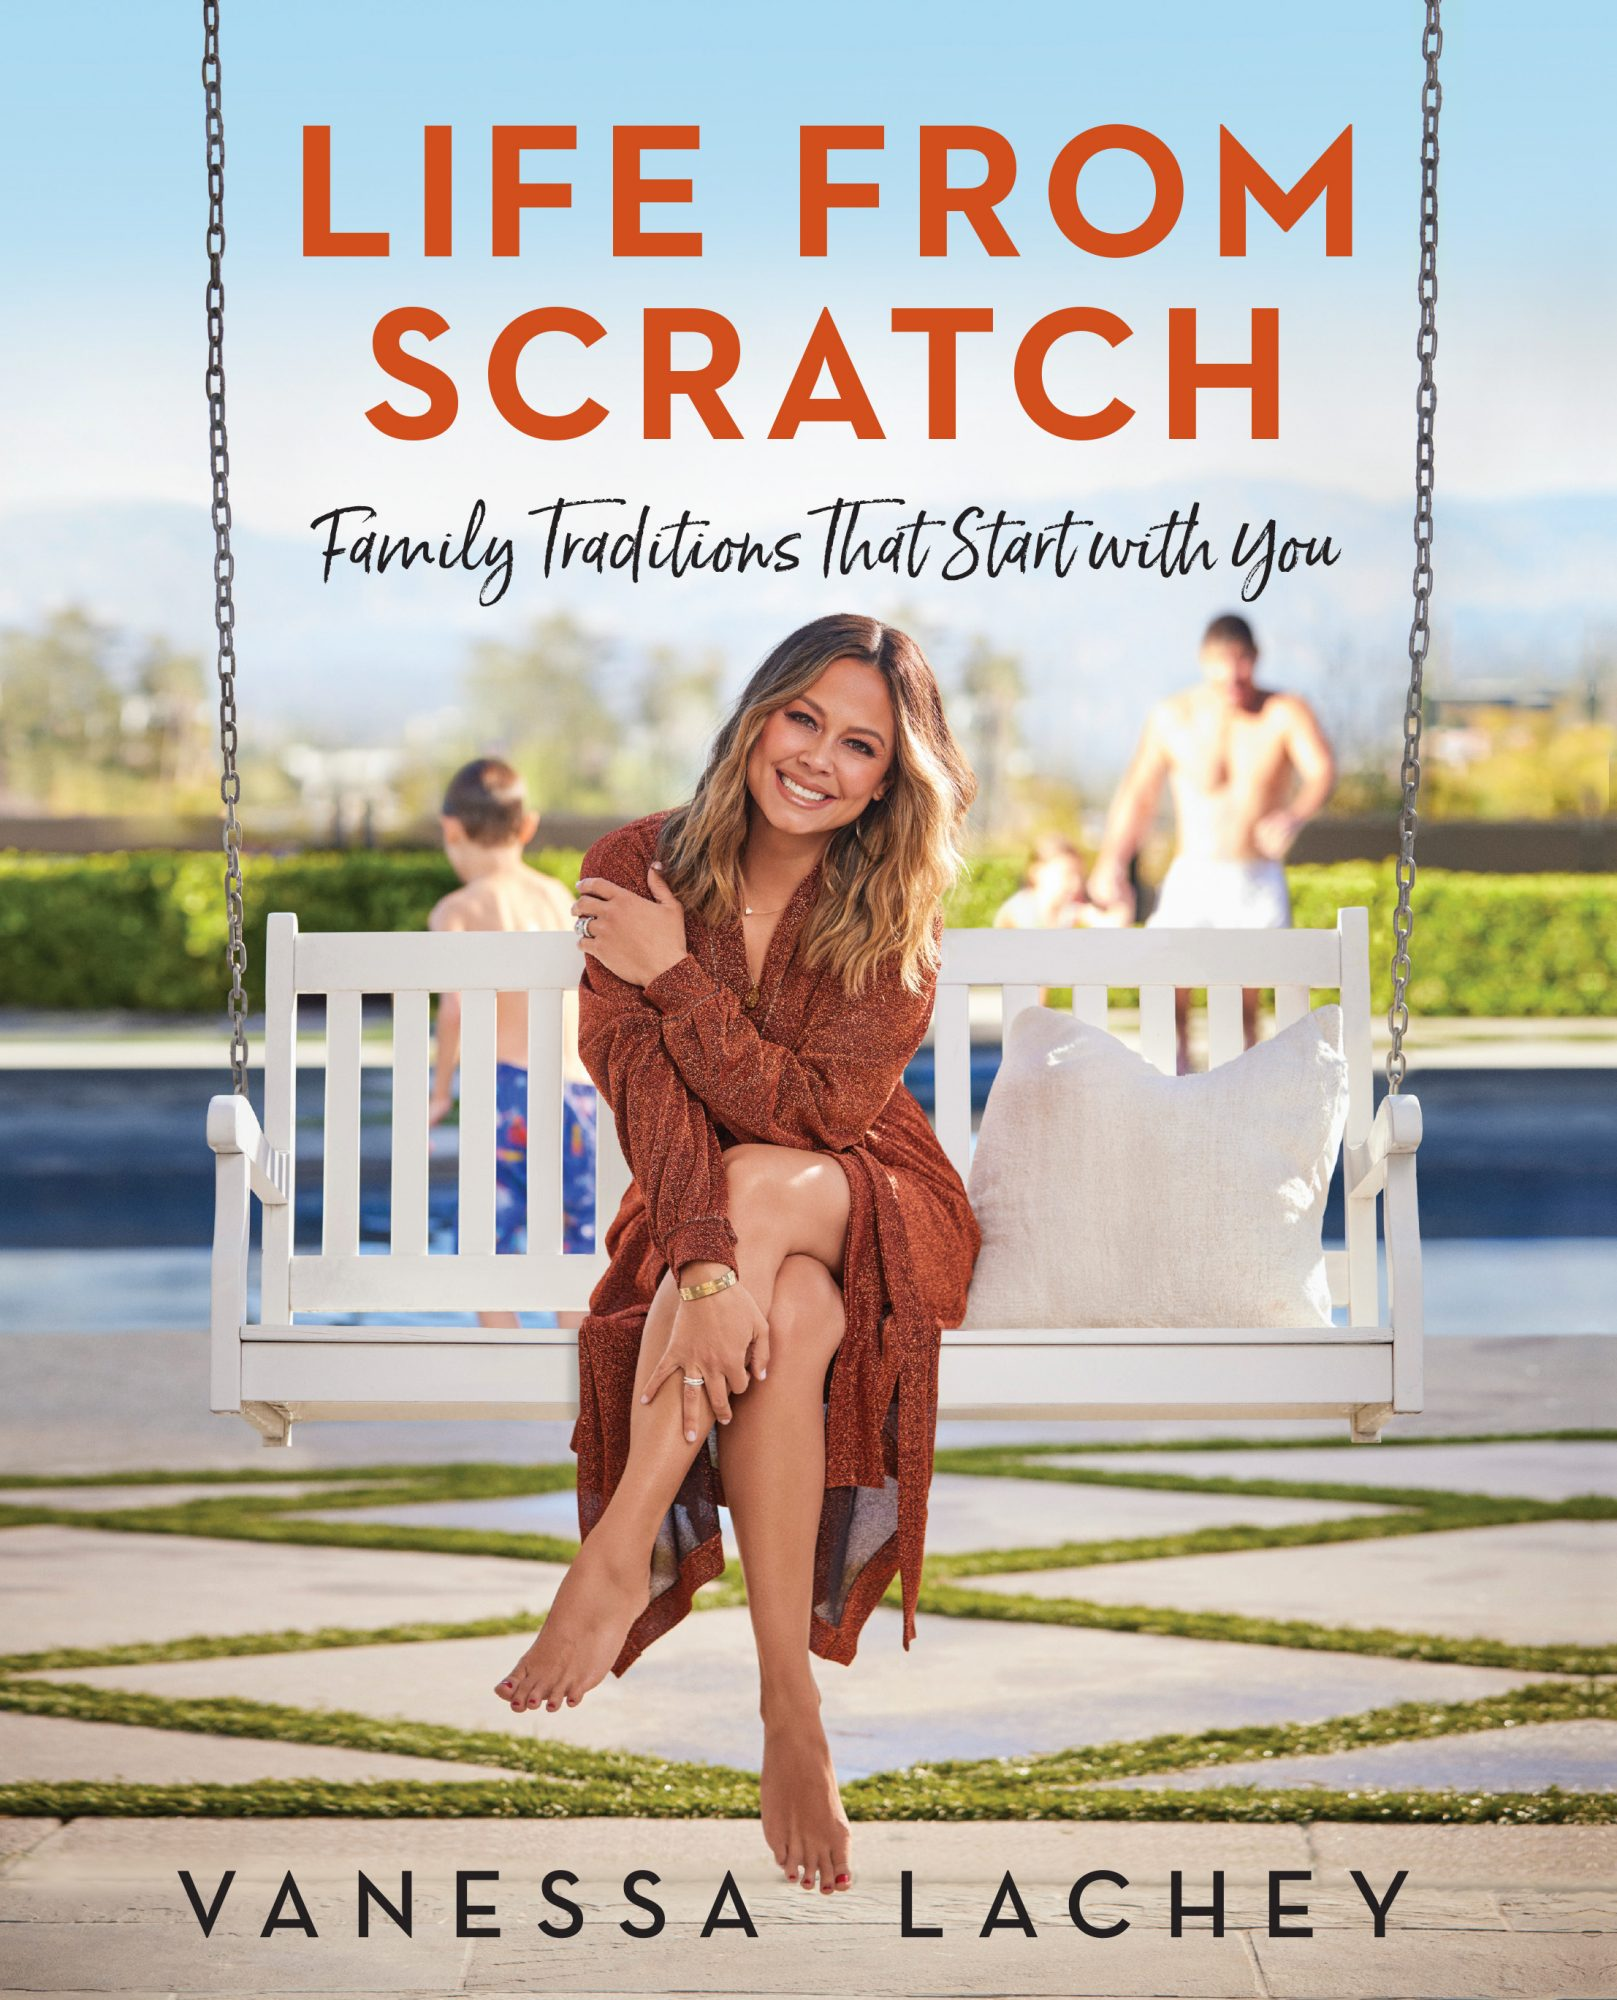 vanessa lachey - Life From Scratch